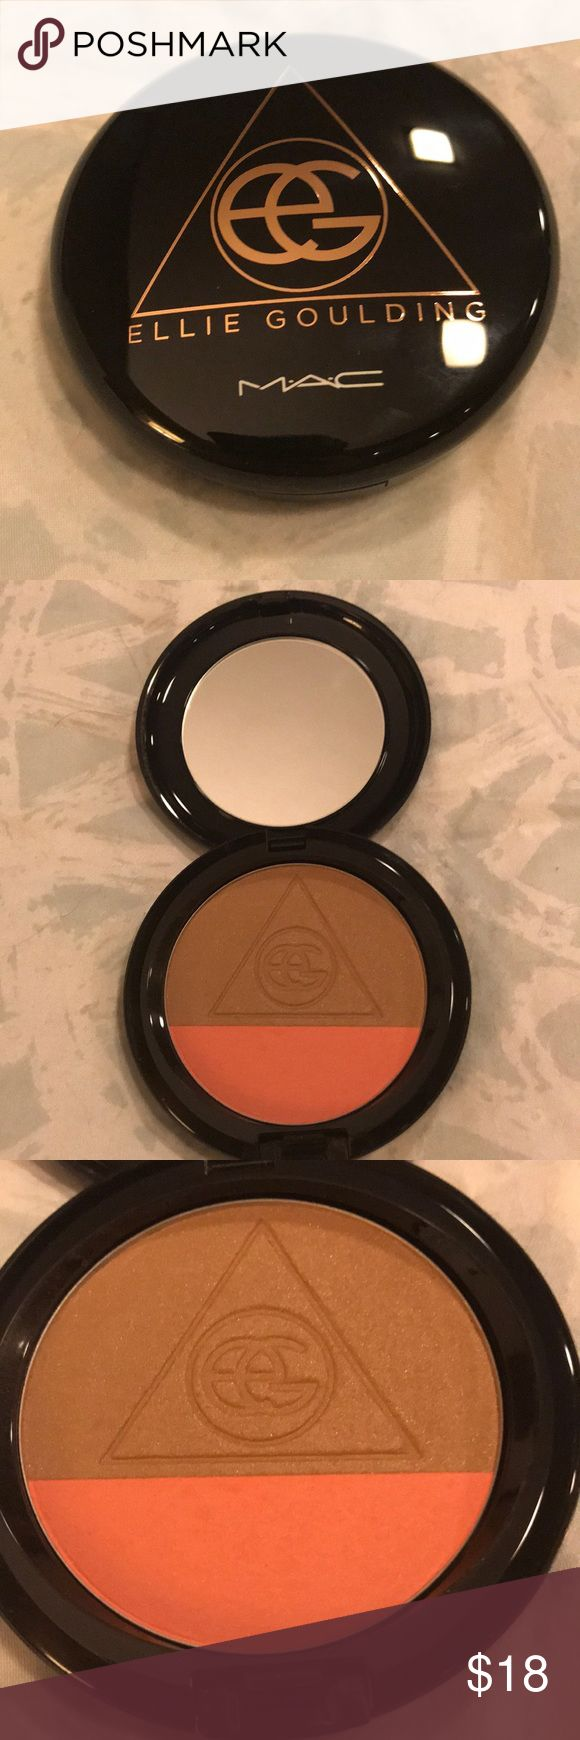 Ellie Goulding for MAC bronzer blush combo Ellie Goulding for MAC bronzer blush combo. Used one time- basically new without box! See pictures for condition! MAC Cosmetics Makeup Blush